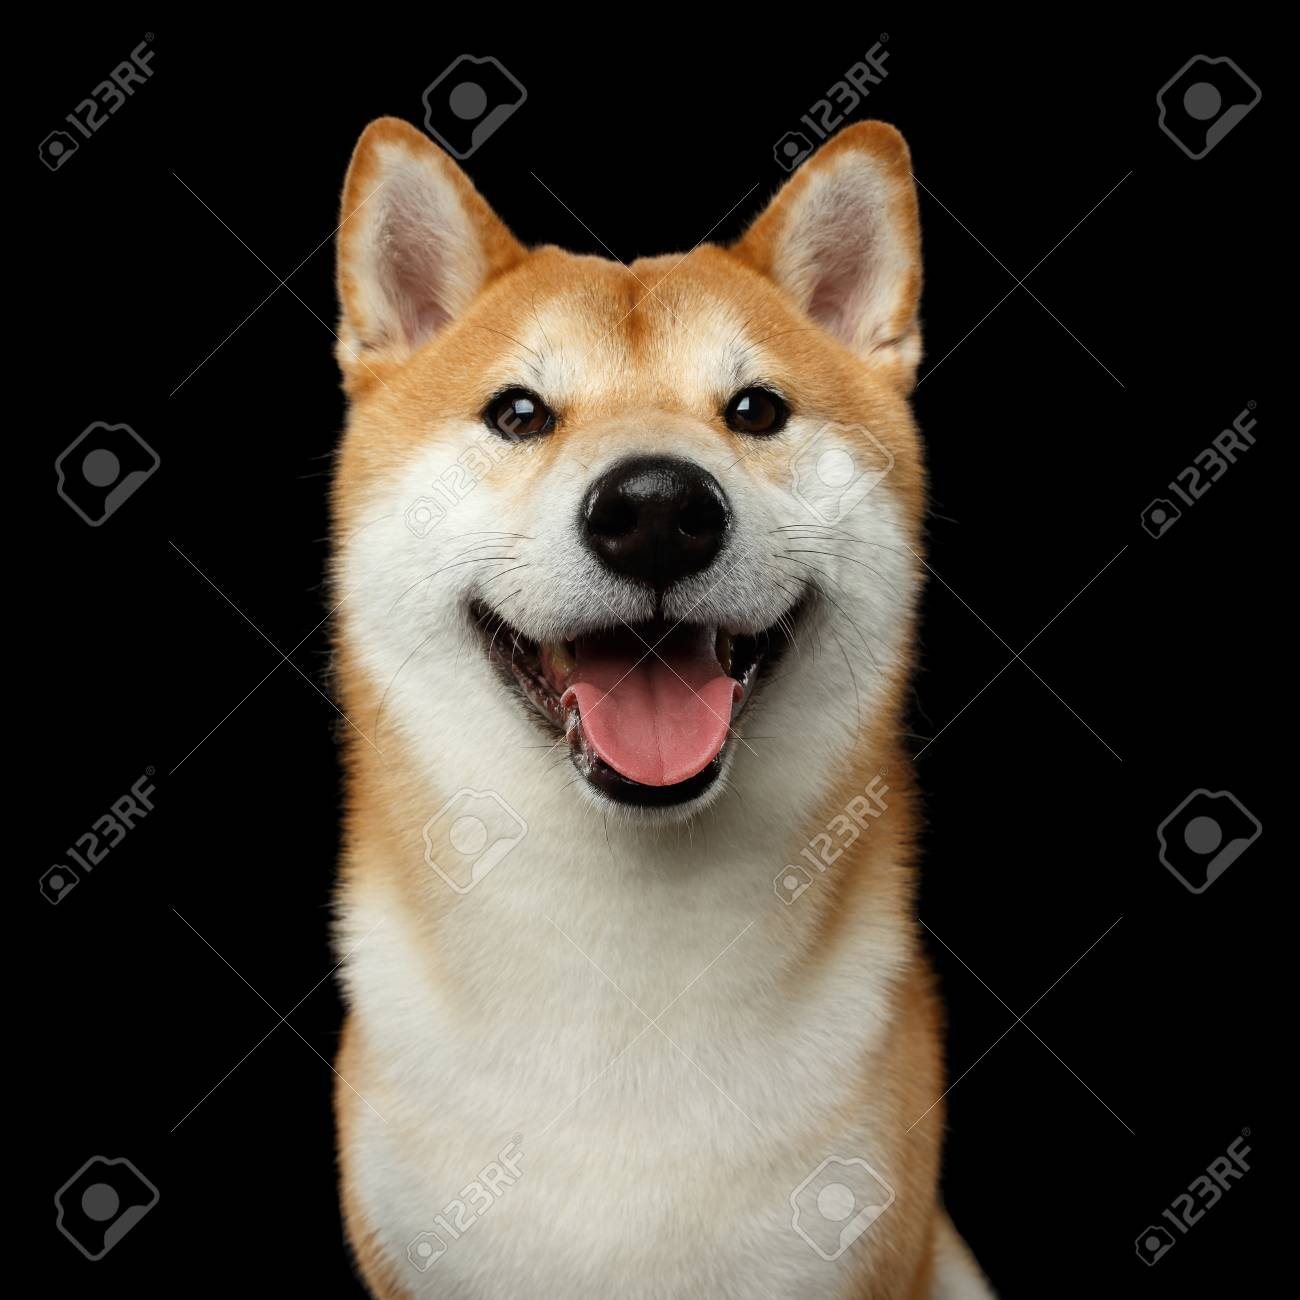 Portrait Of Smiling Shiba Inu Dog Looks Happy Isolated Black Stock Photo Picture And Royalty Free Image Image 83037480